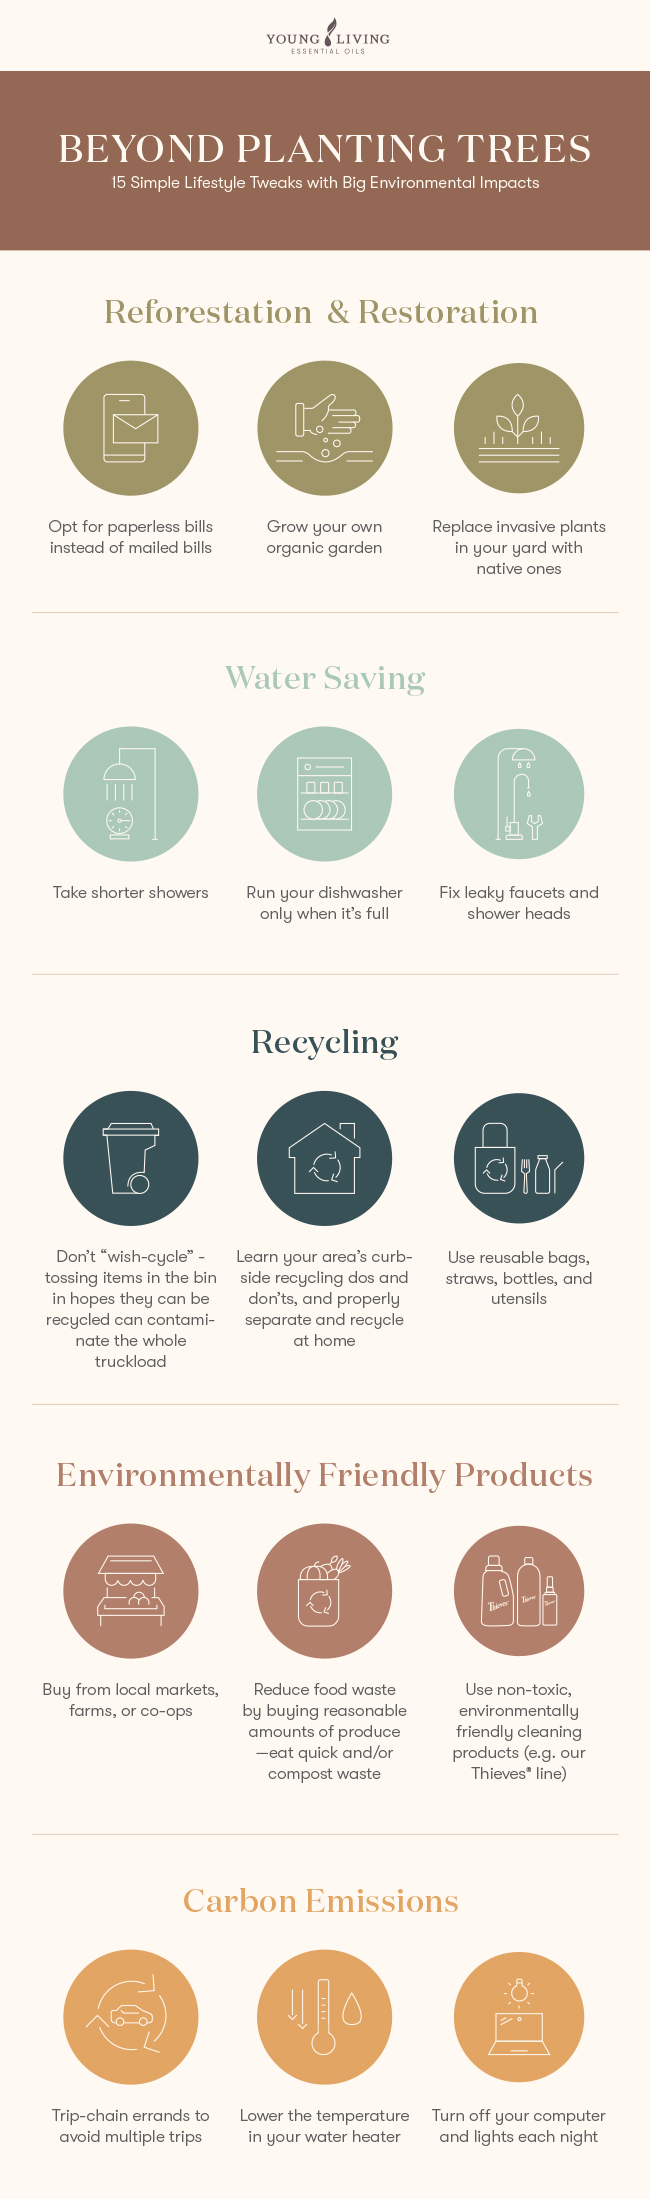 Restore the Earth Infographic - 15 simple tweaks with big environmental impacts